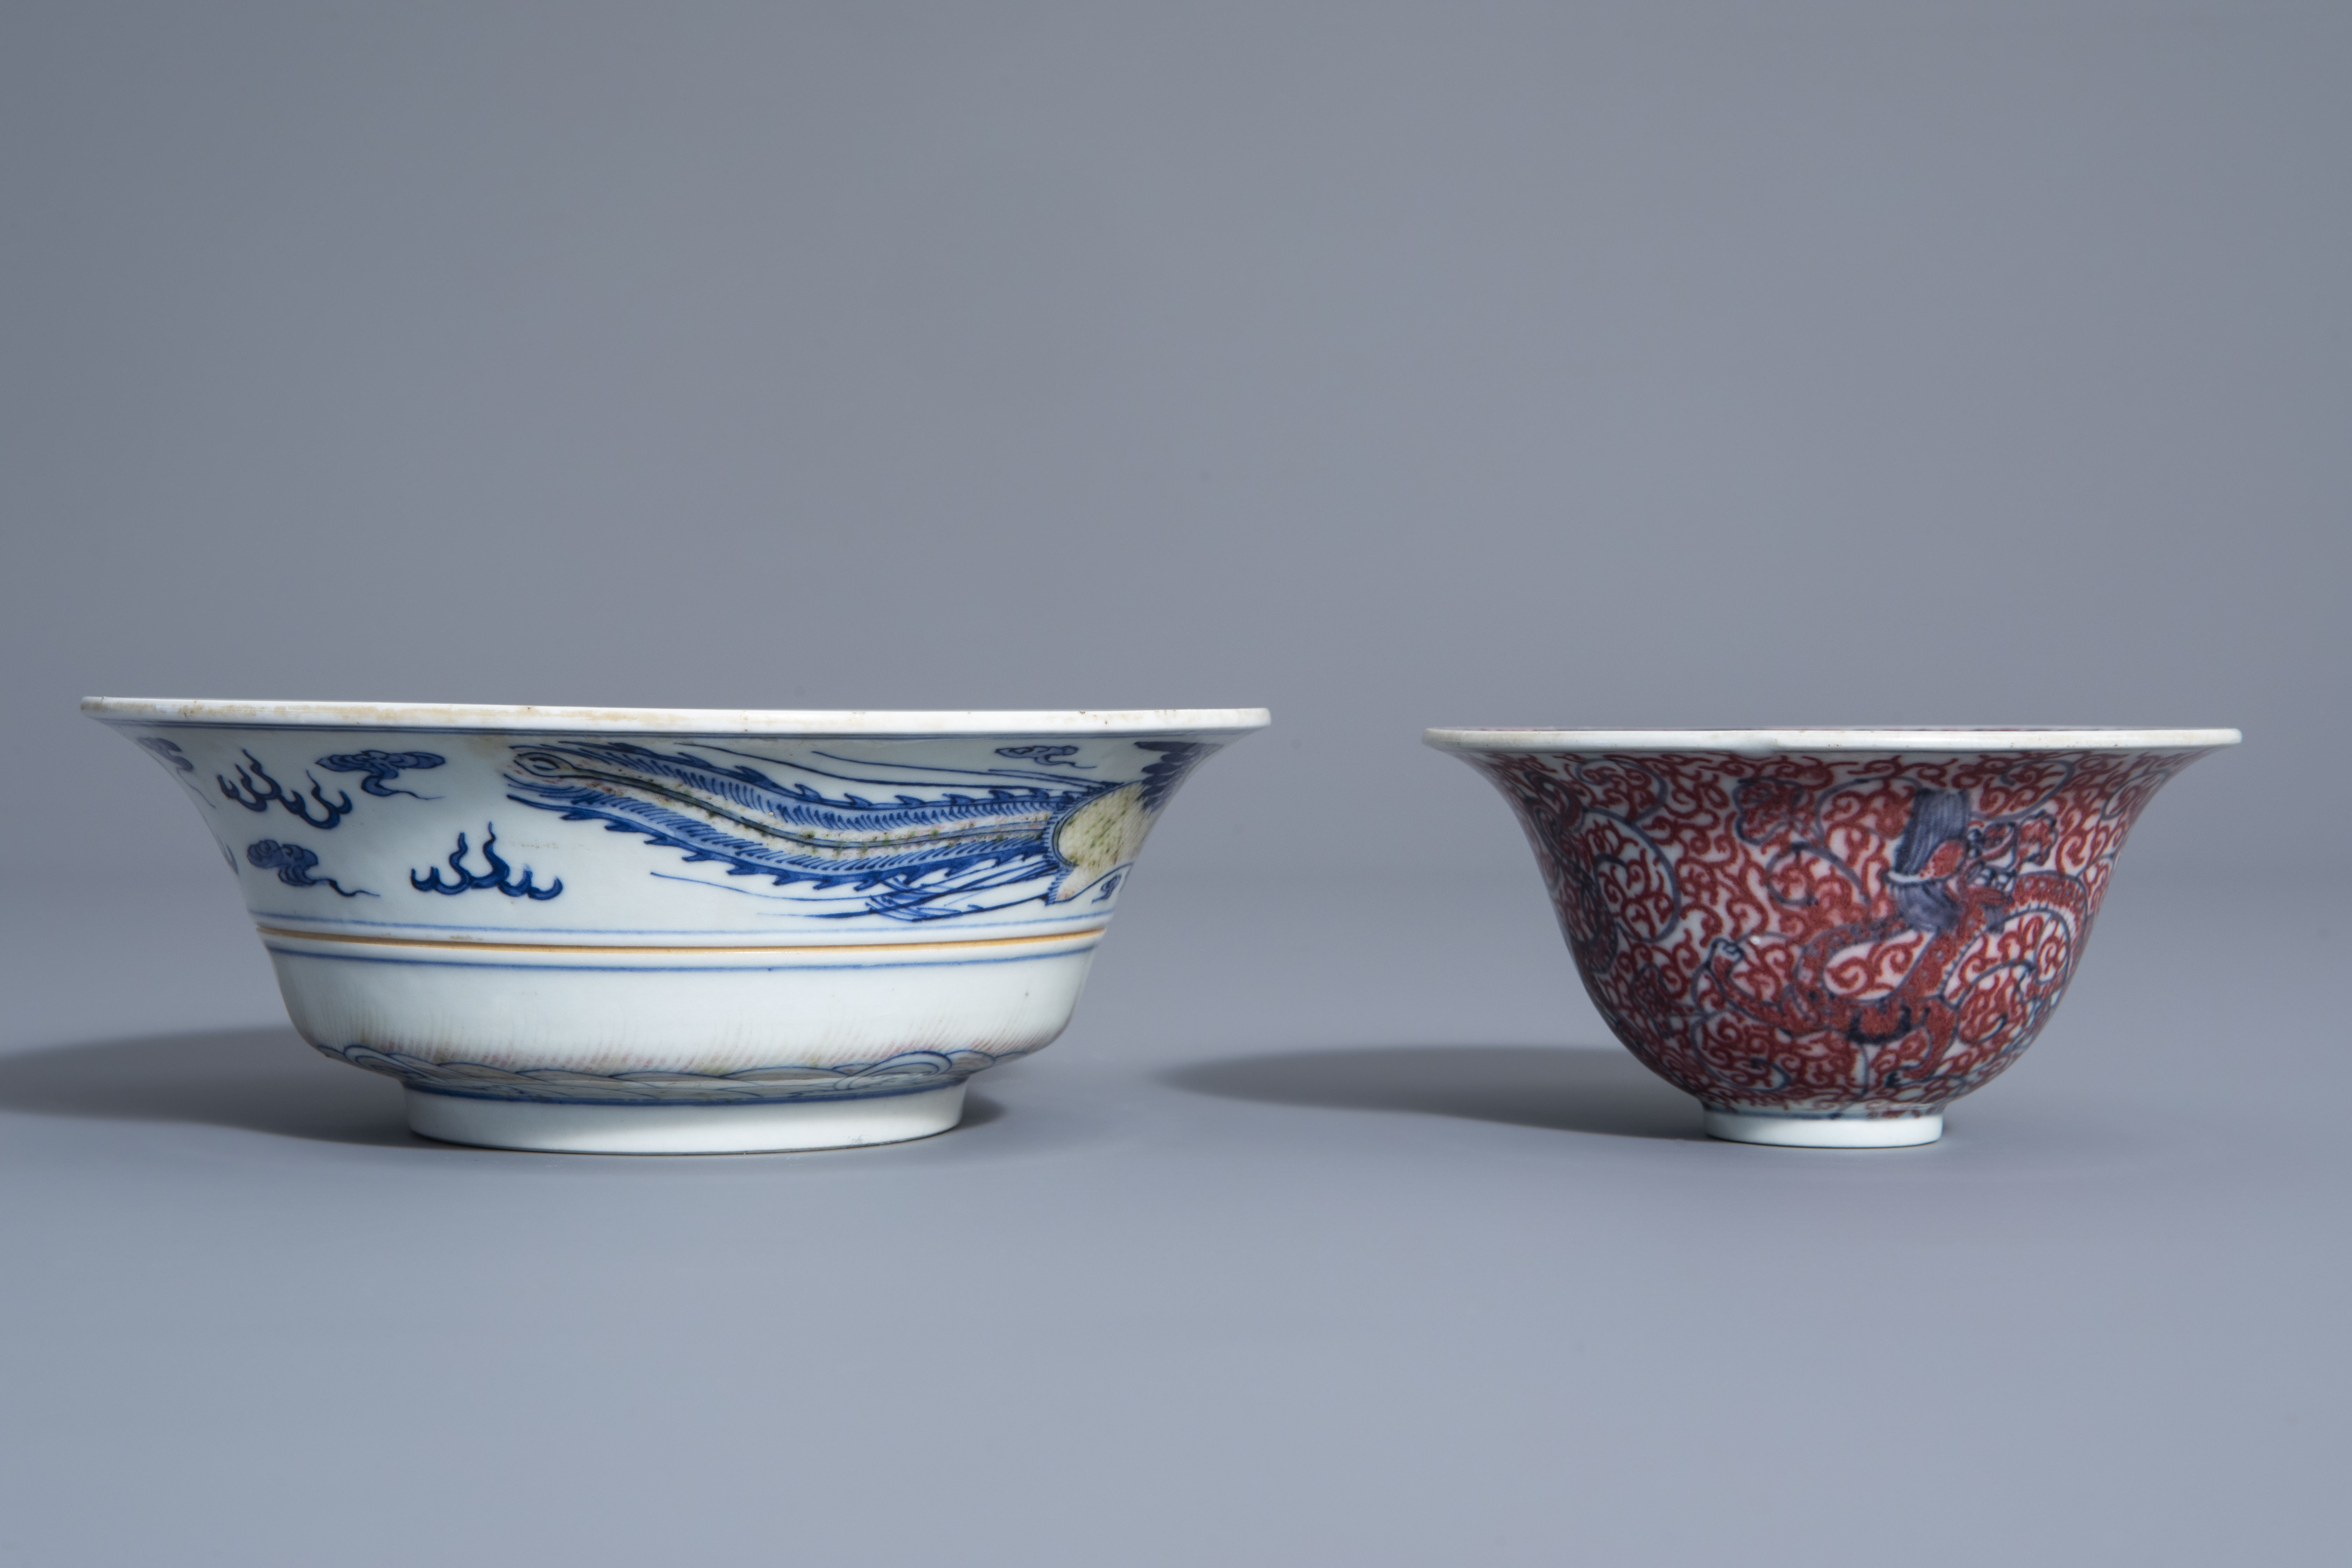 Two Chinese blue, white and copper red bowls, Kangxi mark, 19th/20th C. - Image 4 of 7